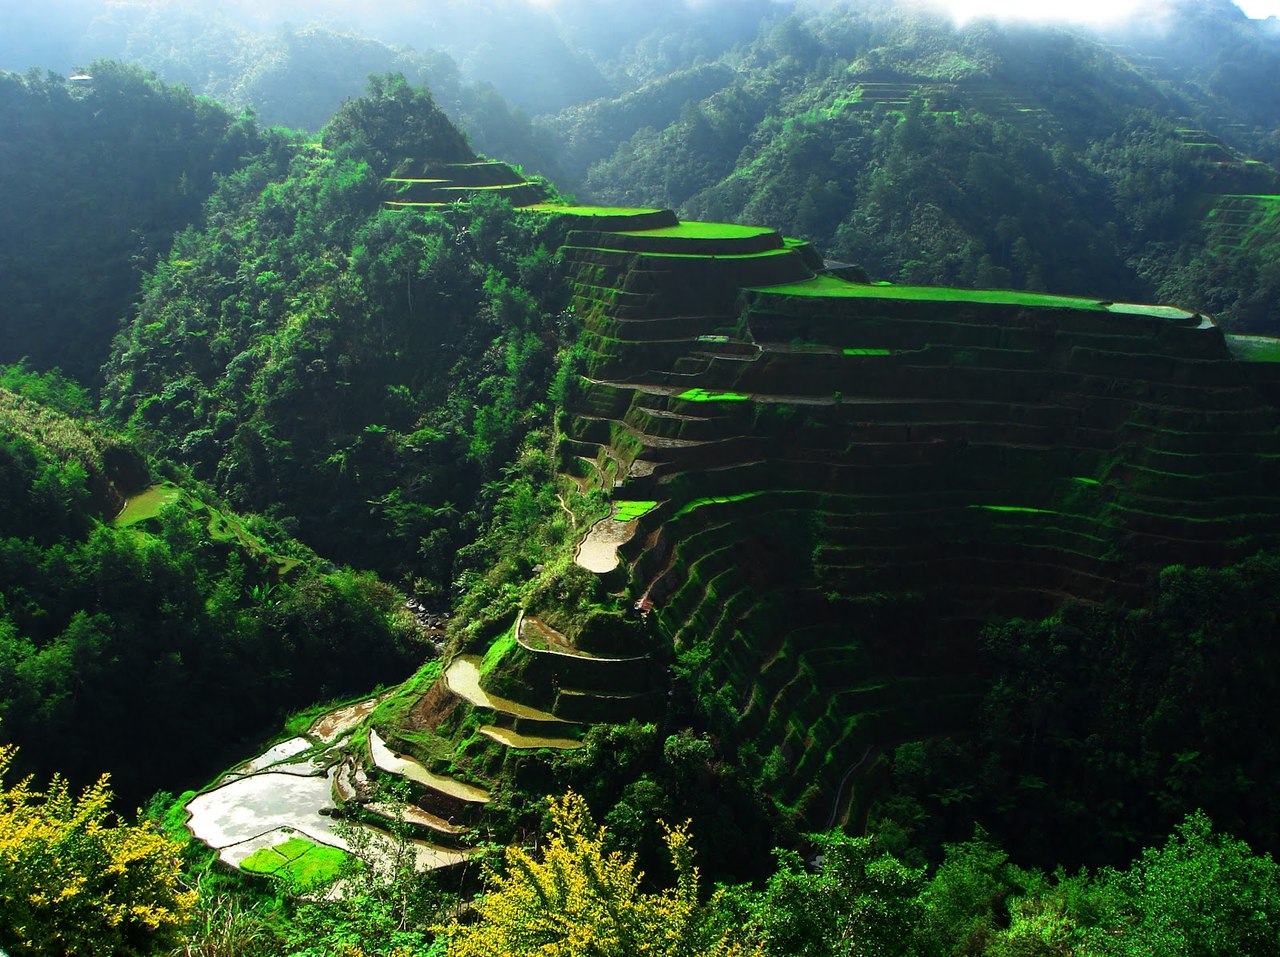 Green Terraces in Philippines 420.21 Kb